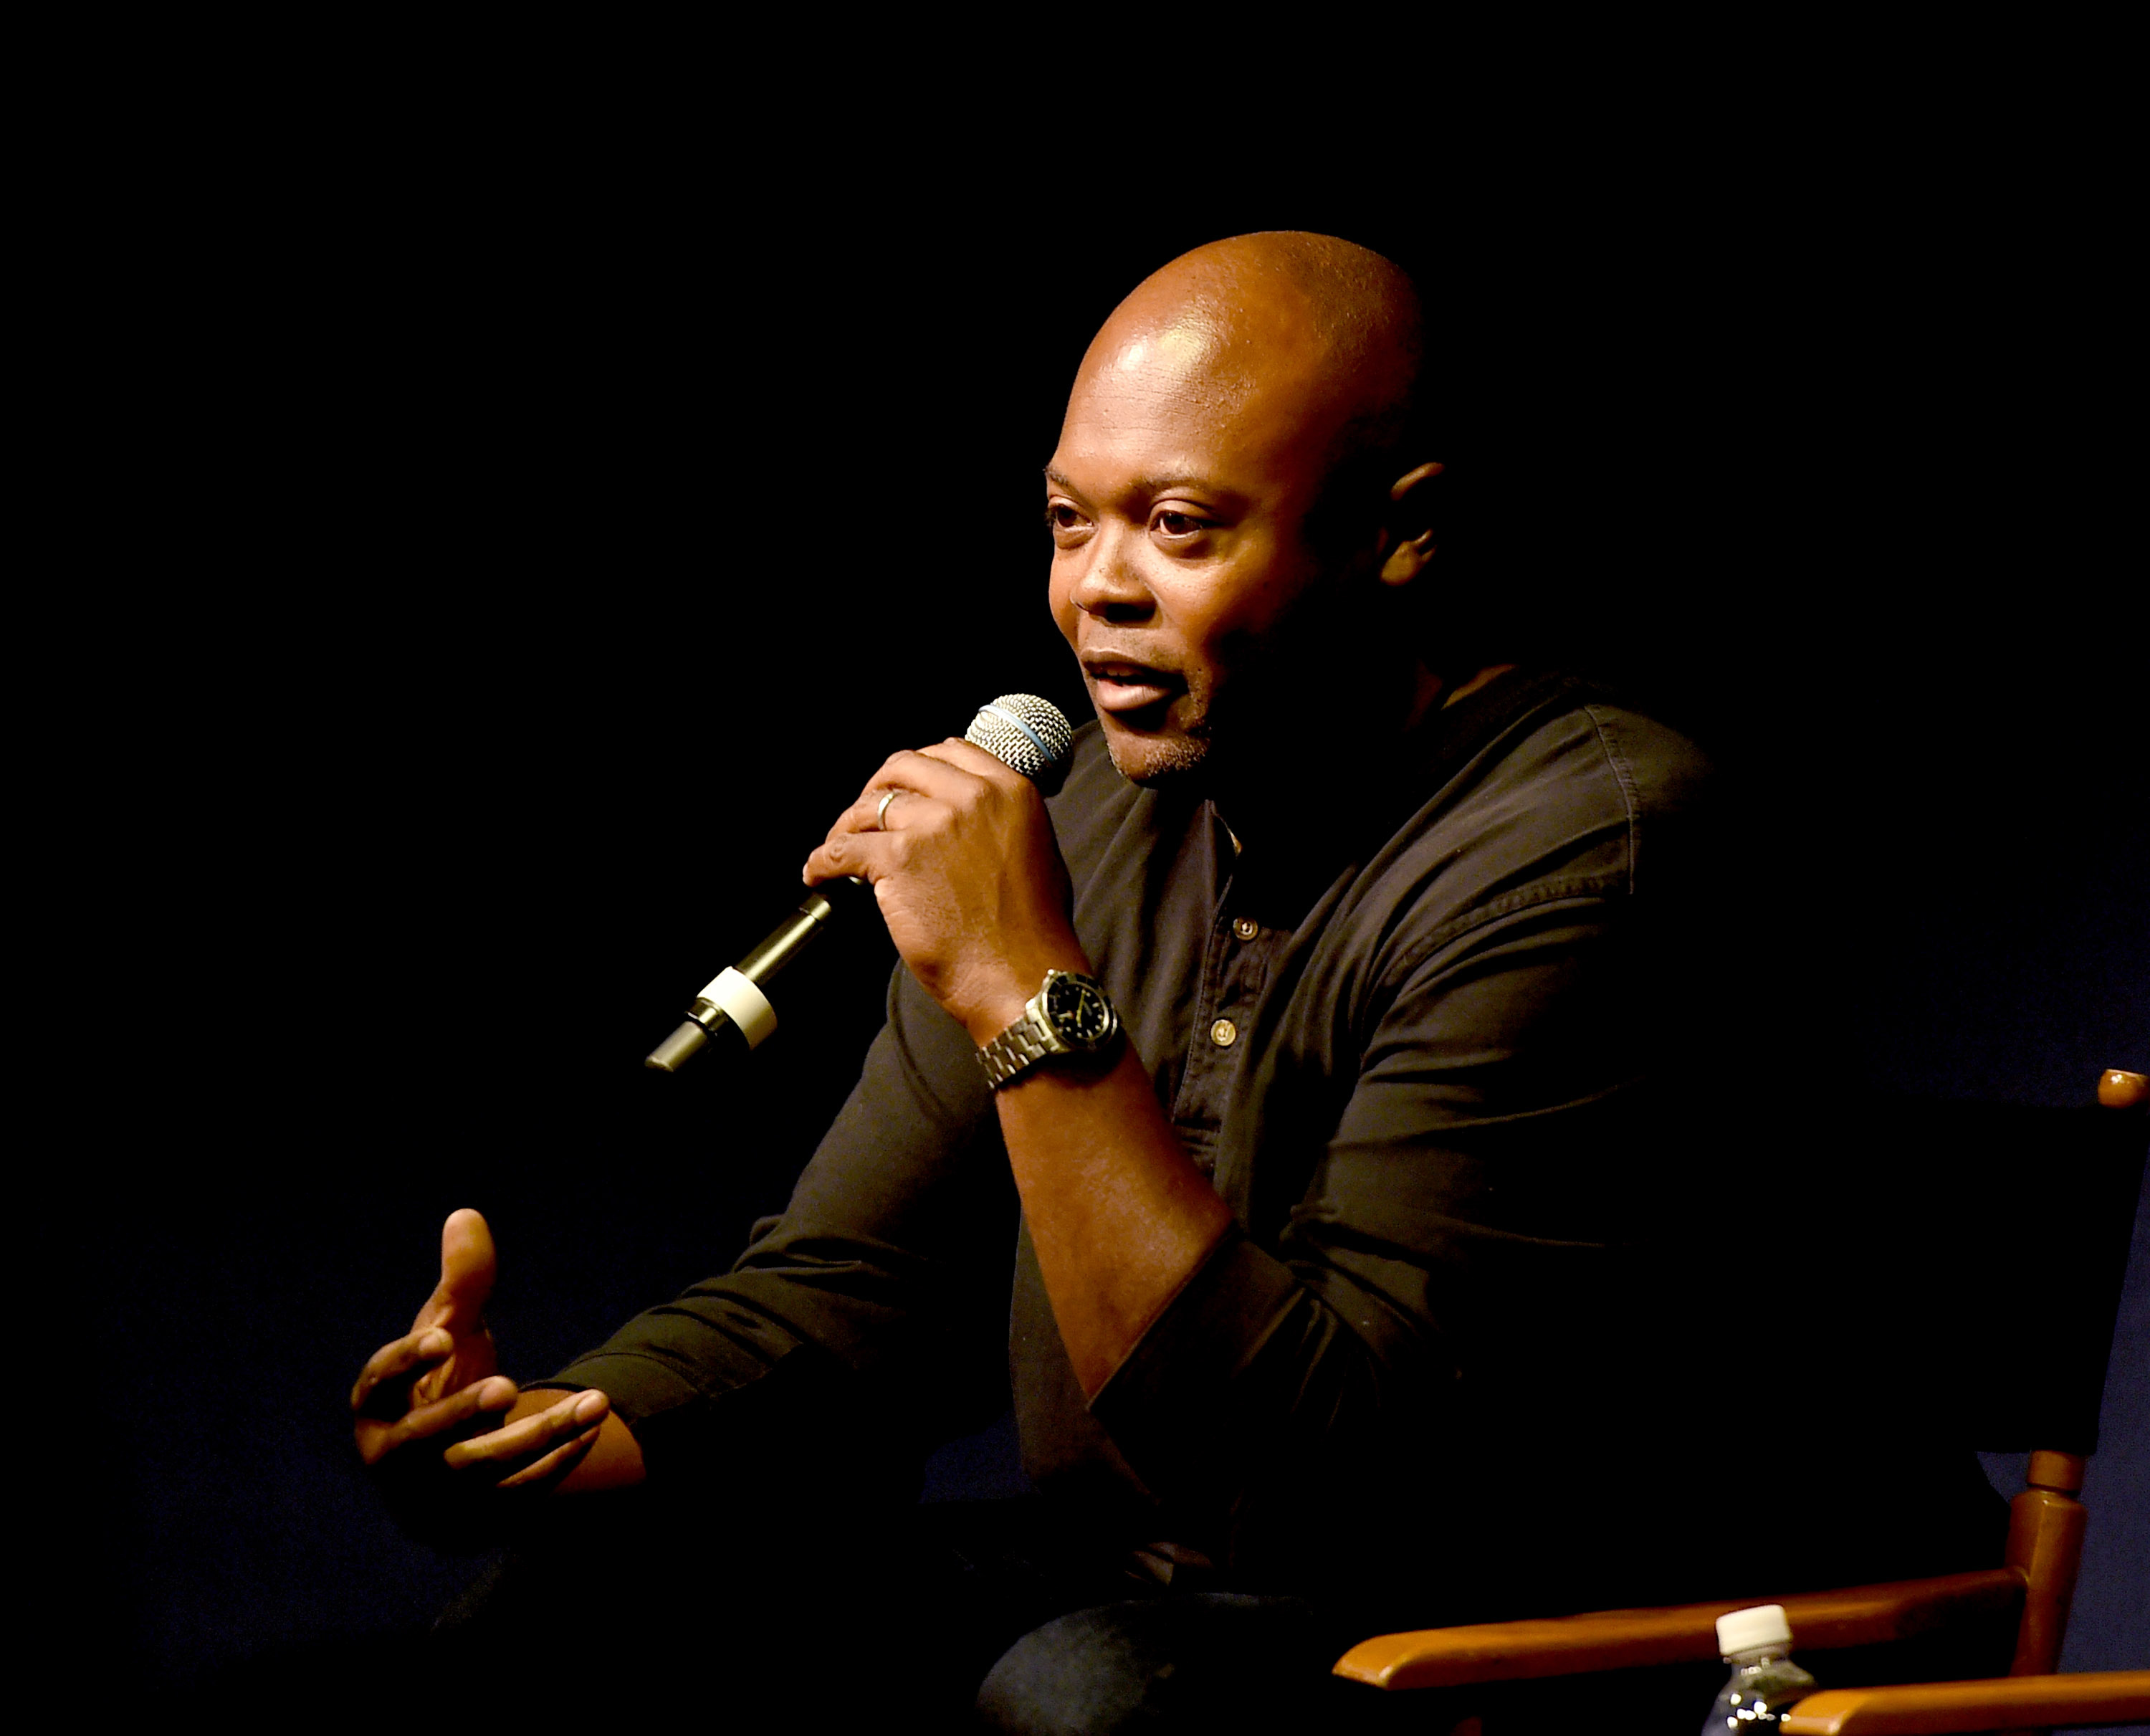 """LOS ANGELES, CA - JUNE 22: Writer Cheo Hodari Coker speaks onstage at the WGAw Committee of Black Writers and LGBT Writers Committee present an evening with Fox's """"Empire"""" at The Writers Guild of America, West on June 22, 2015 in Los Angeles, California. (Photo by Kevin Winter/Getty Images)"""